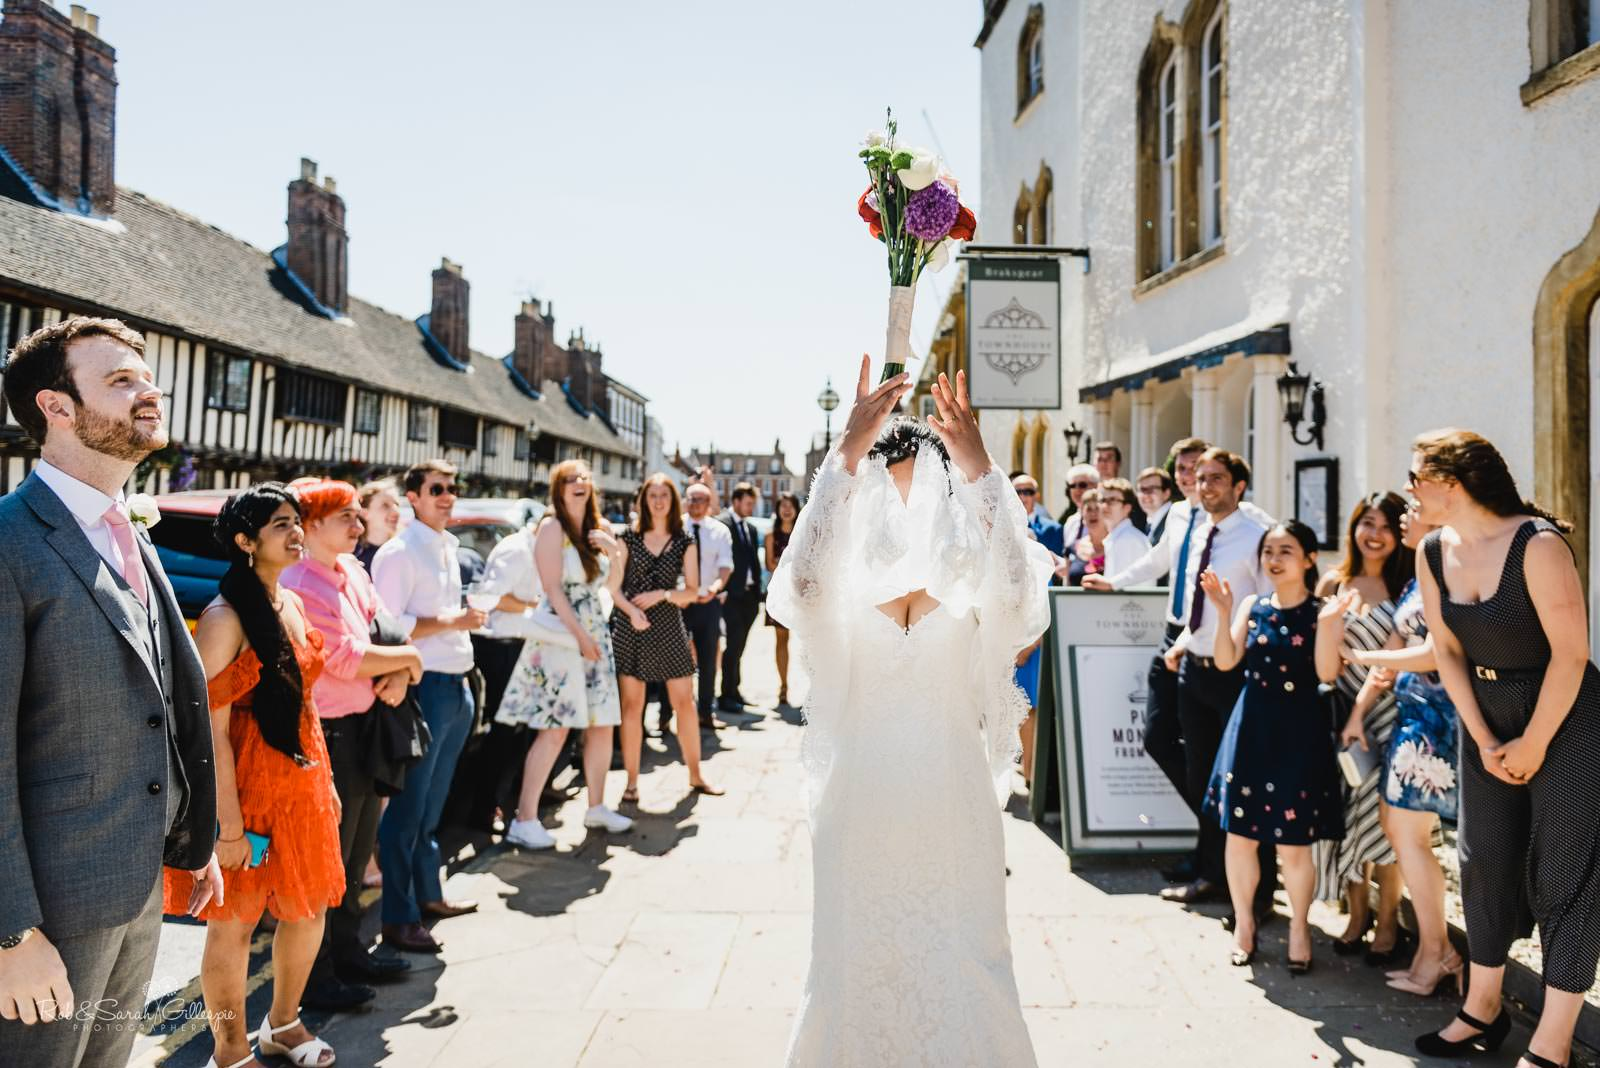 Wedding at The Townhouse in Stratford upon Avon